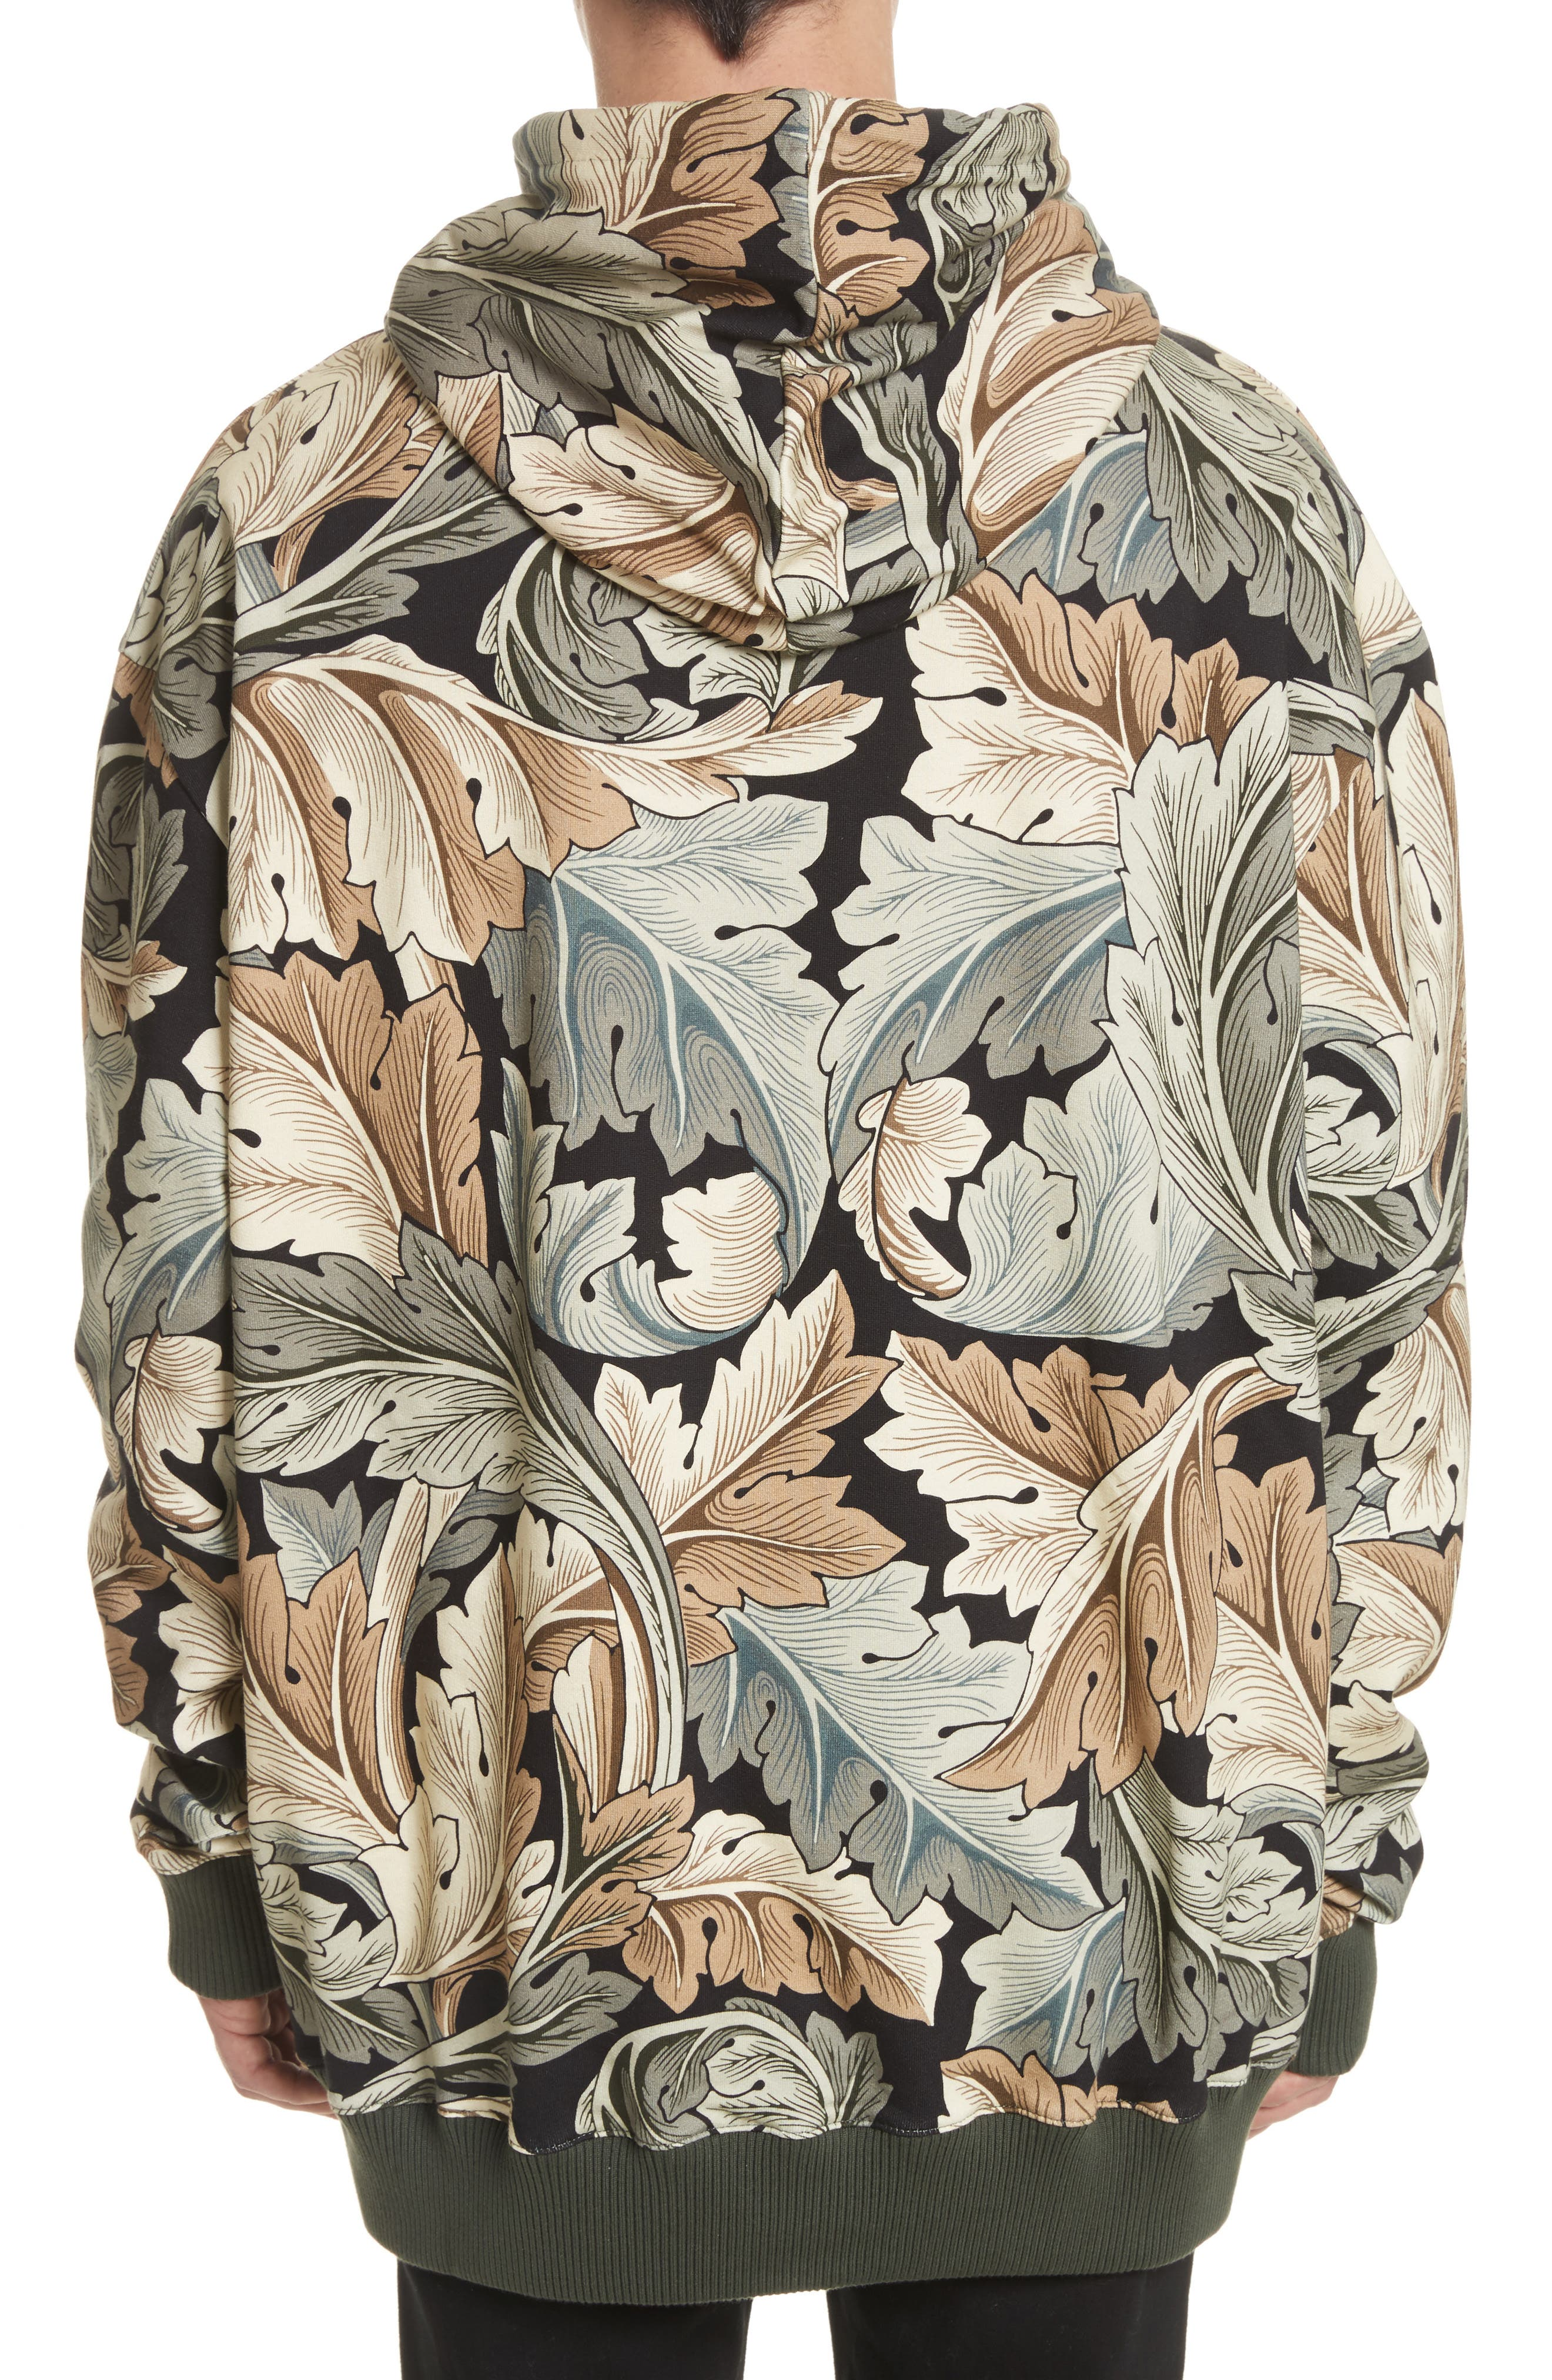 William Morris Print Oversize Hoodie,                             Alternate thumbnail 2, color,                             100